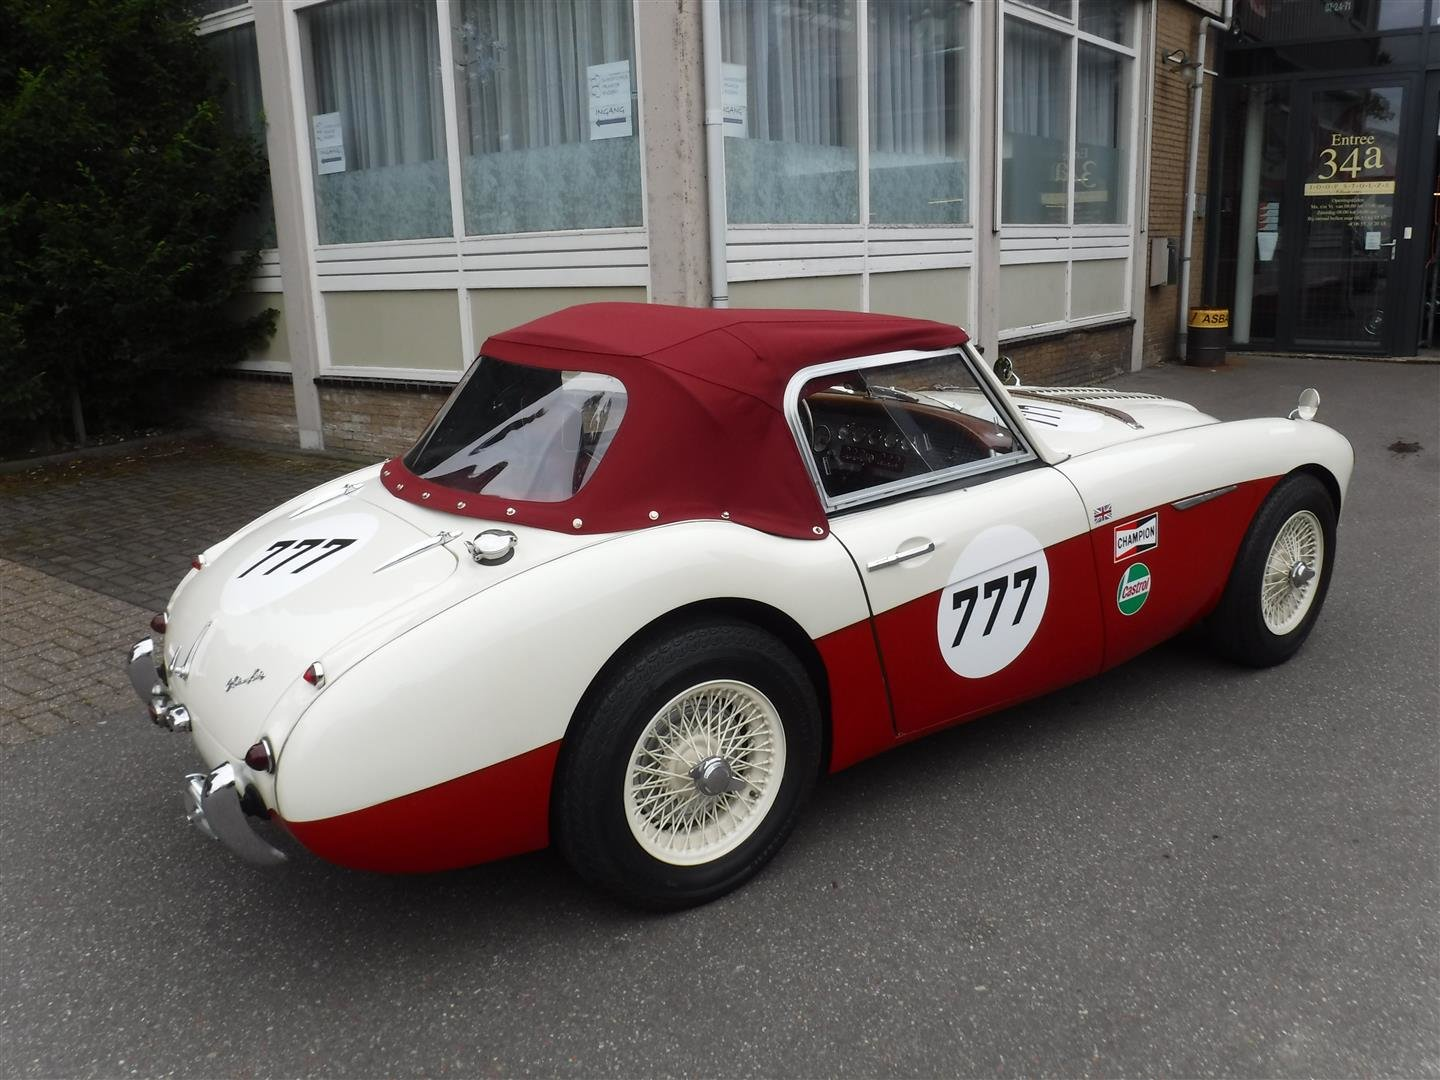 Austin Healey 100 / 6 rallye  6 cil.  2639cc  1957 For Sale (picture 5 of 6)